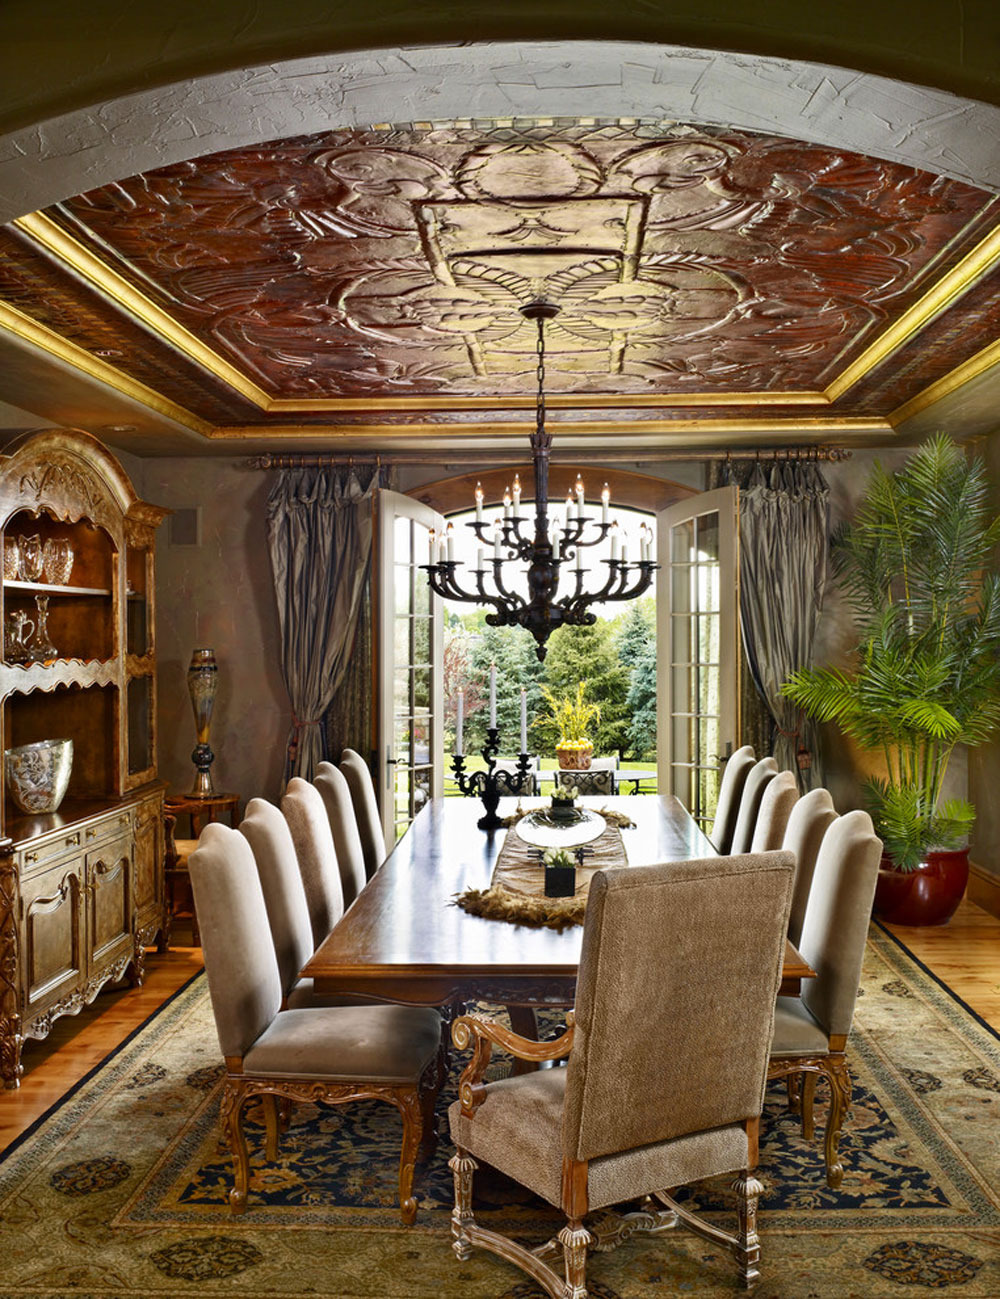 Inside the Most Beautiful Homes Best Of Beautiful Houses Interior Design Tips for Small or Big Homes